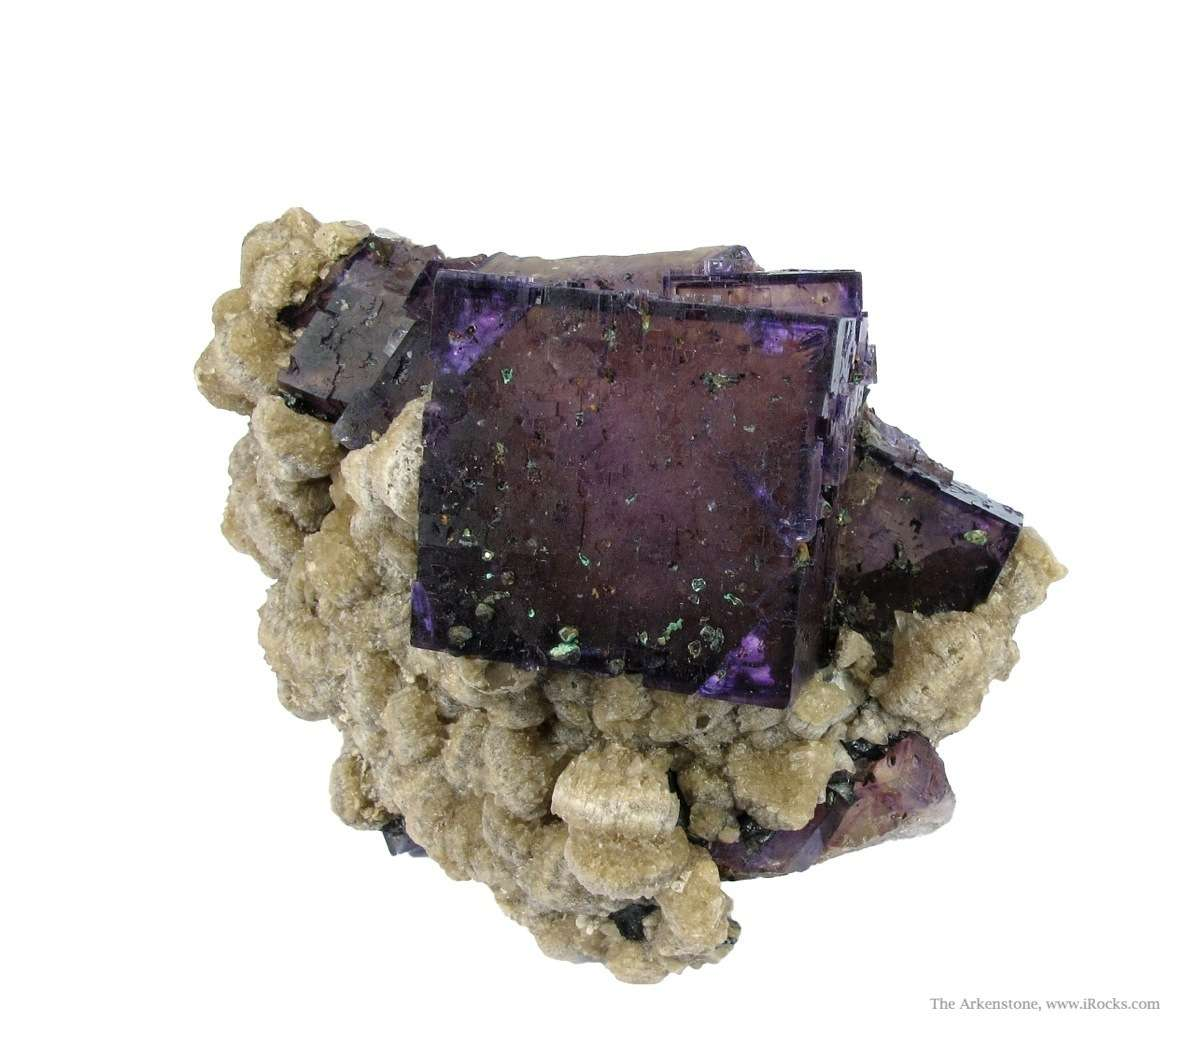 This piece special significance rare example good fluorite old section